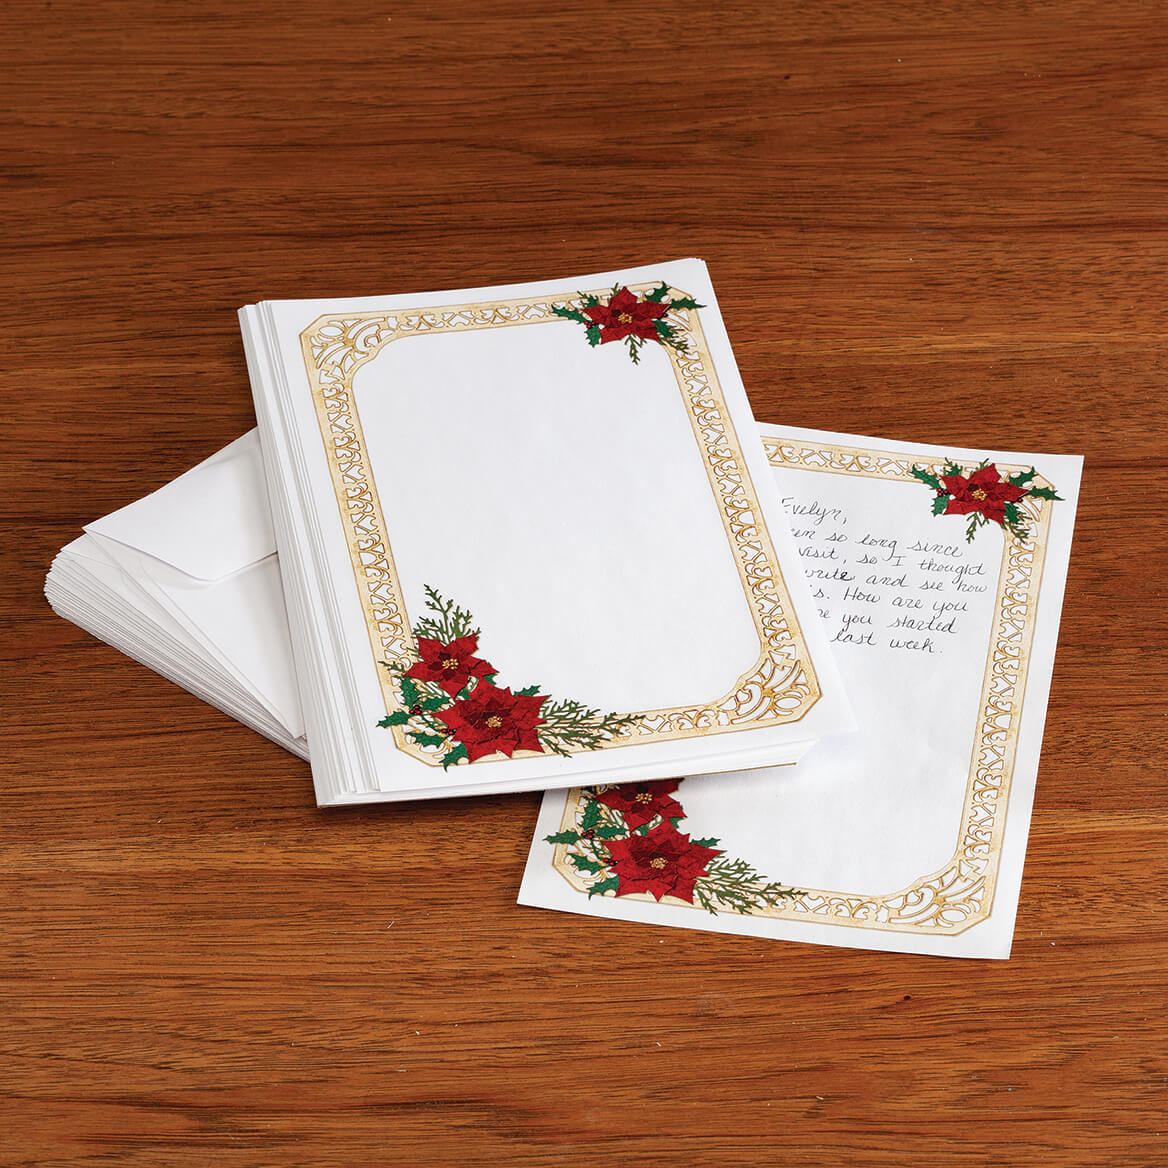 Poinsettia Collage Stationery Set-372028